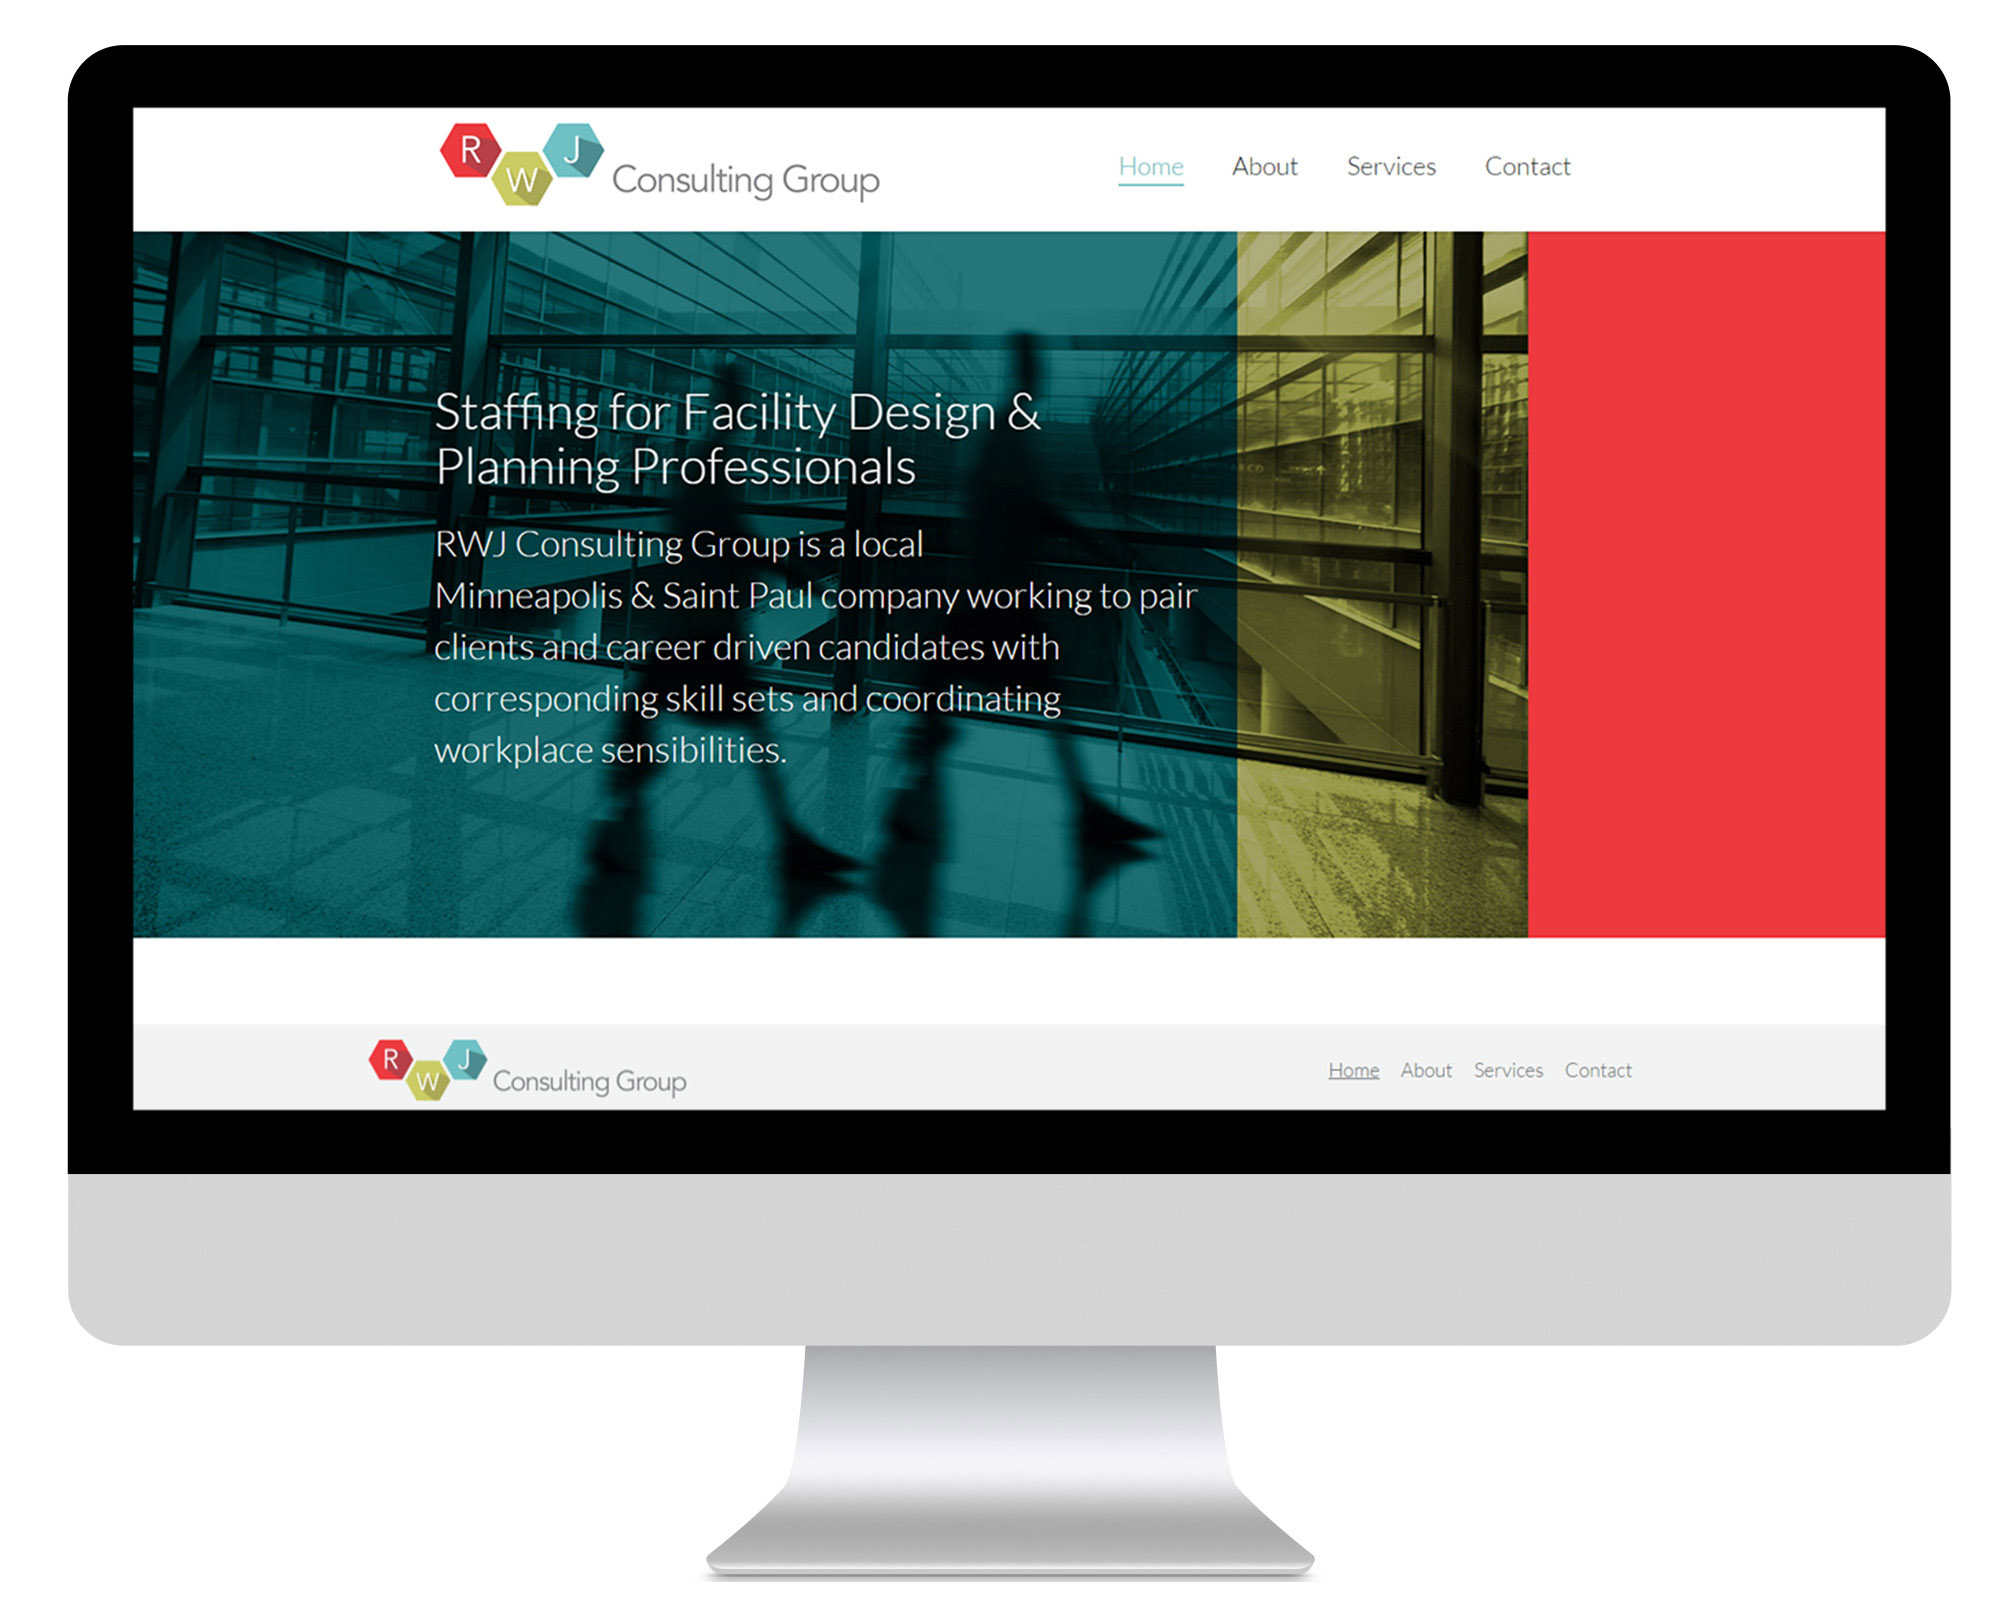 RWJ Consulting Group Homepage Design